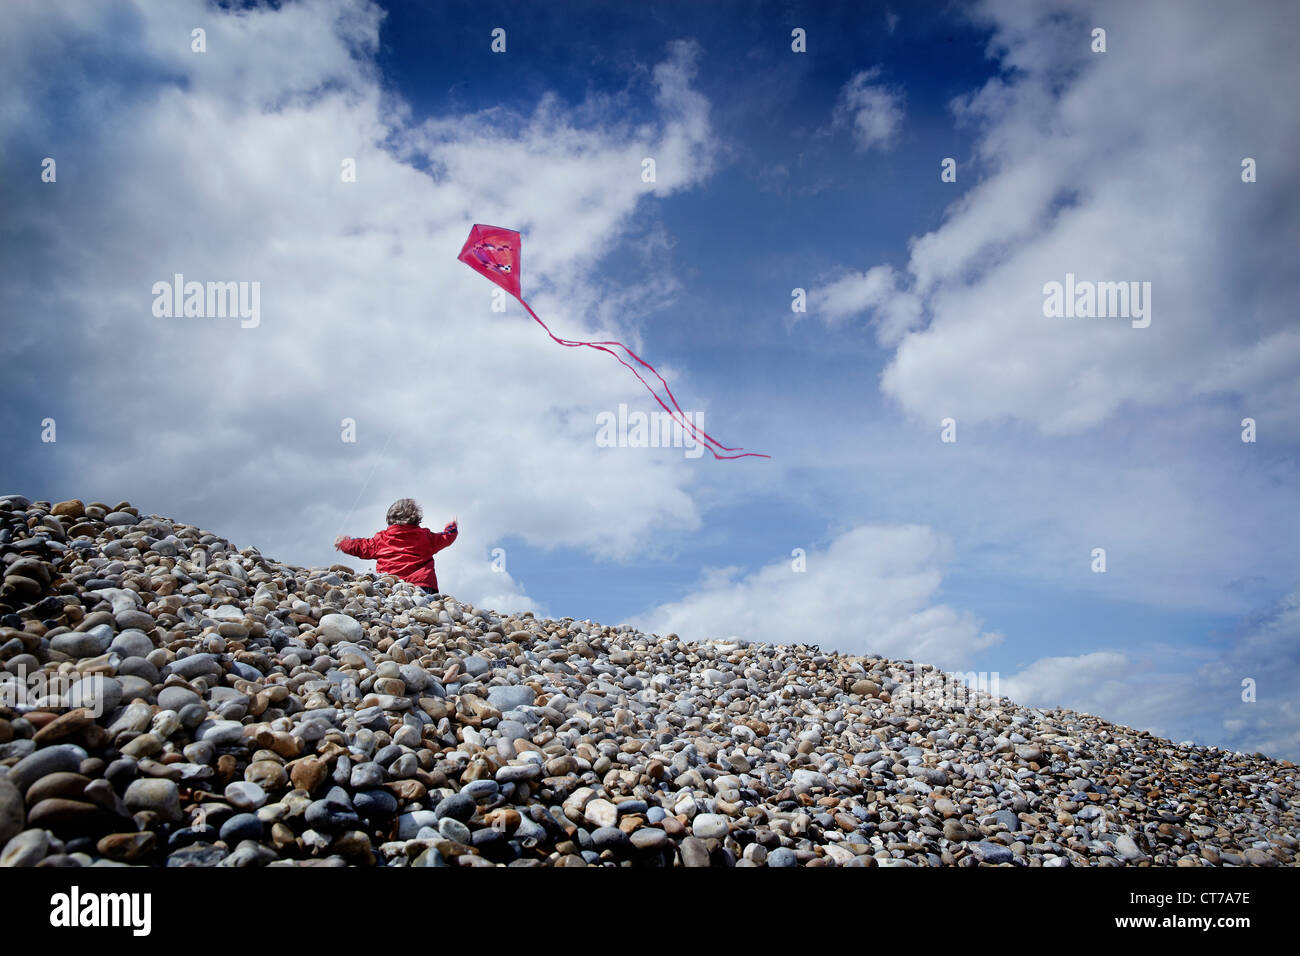 Little boy flying a kite on a pebble beach - Stock Image